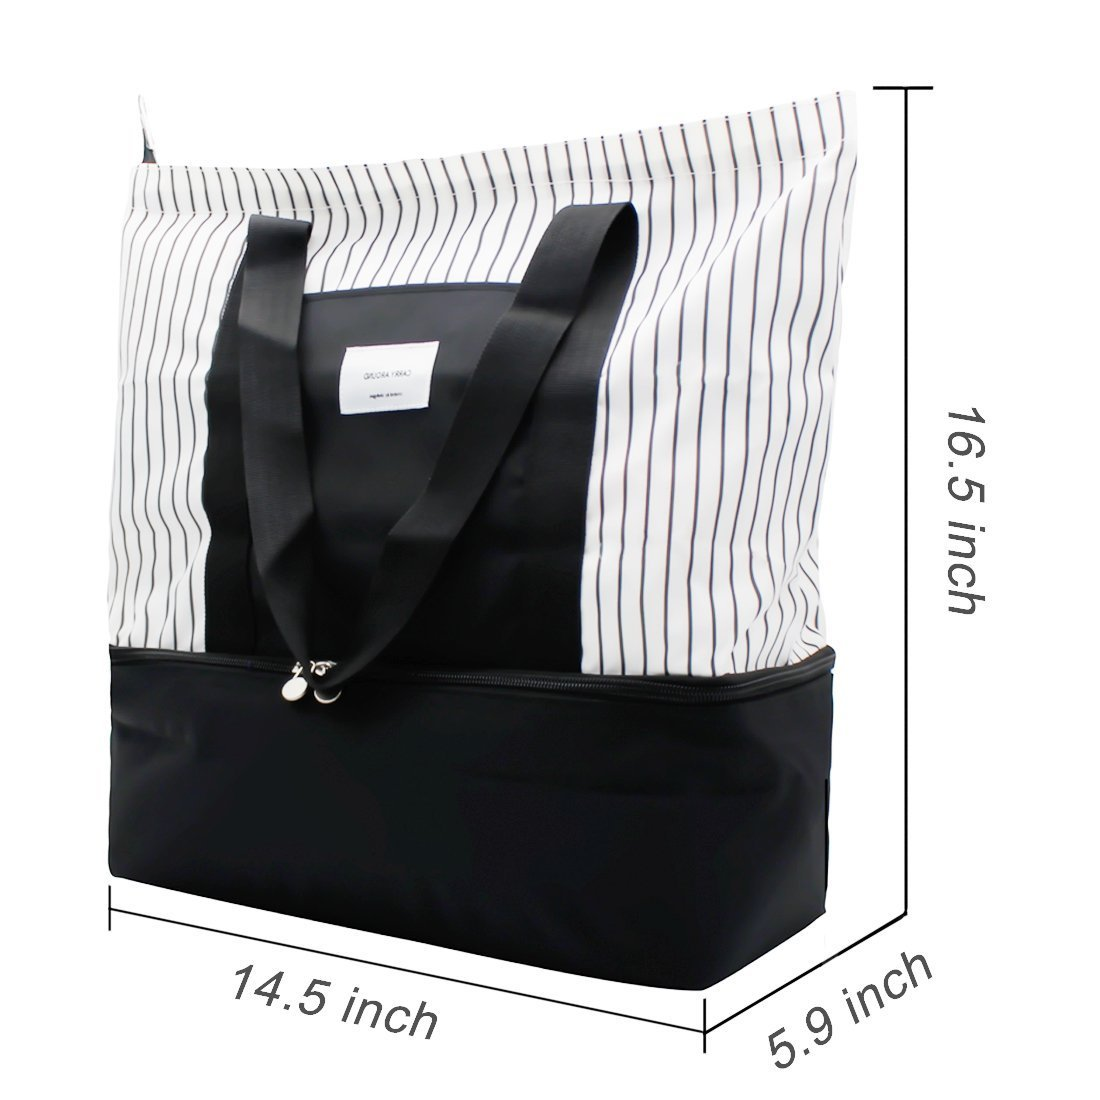 2-in-1 Large Insulated Cooler lunch Tote Bag Ladies Trendy Zippered Teacher Bag Utility Beach Tote Bag for Women by ExquisiteHome (Image #2)